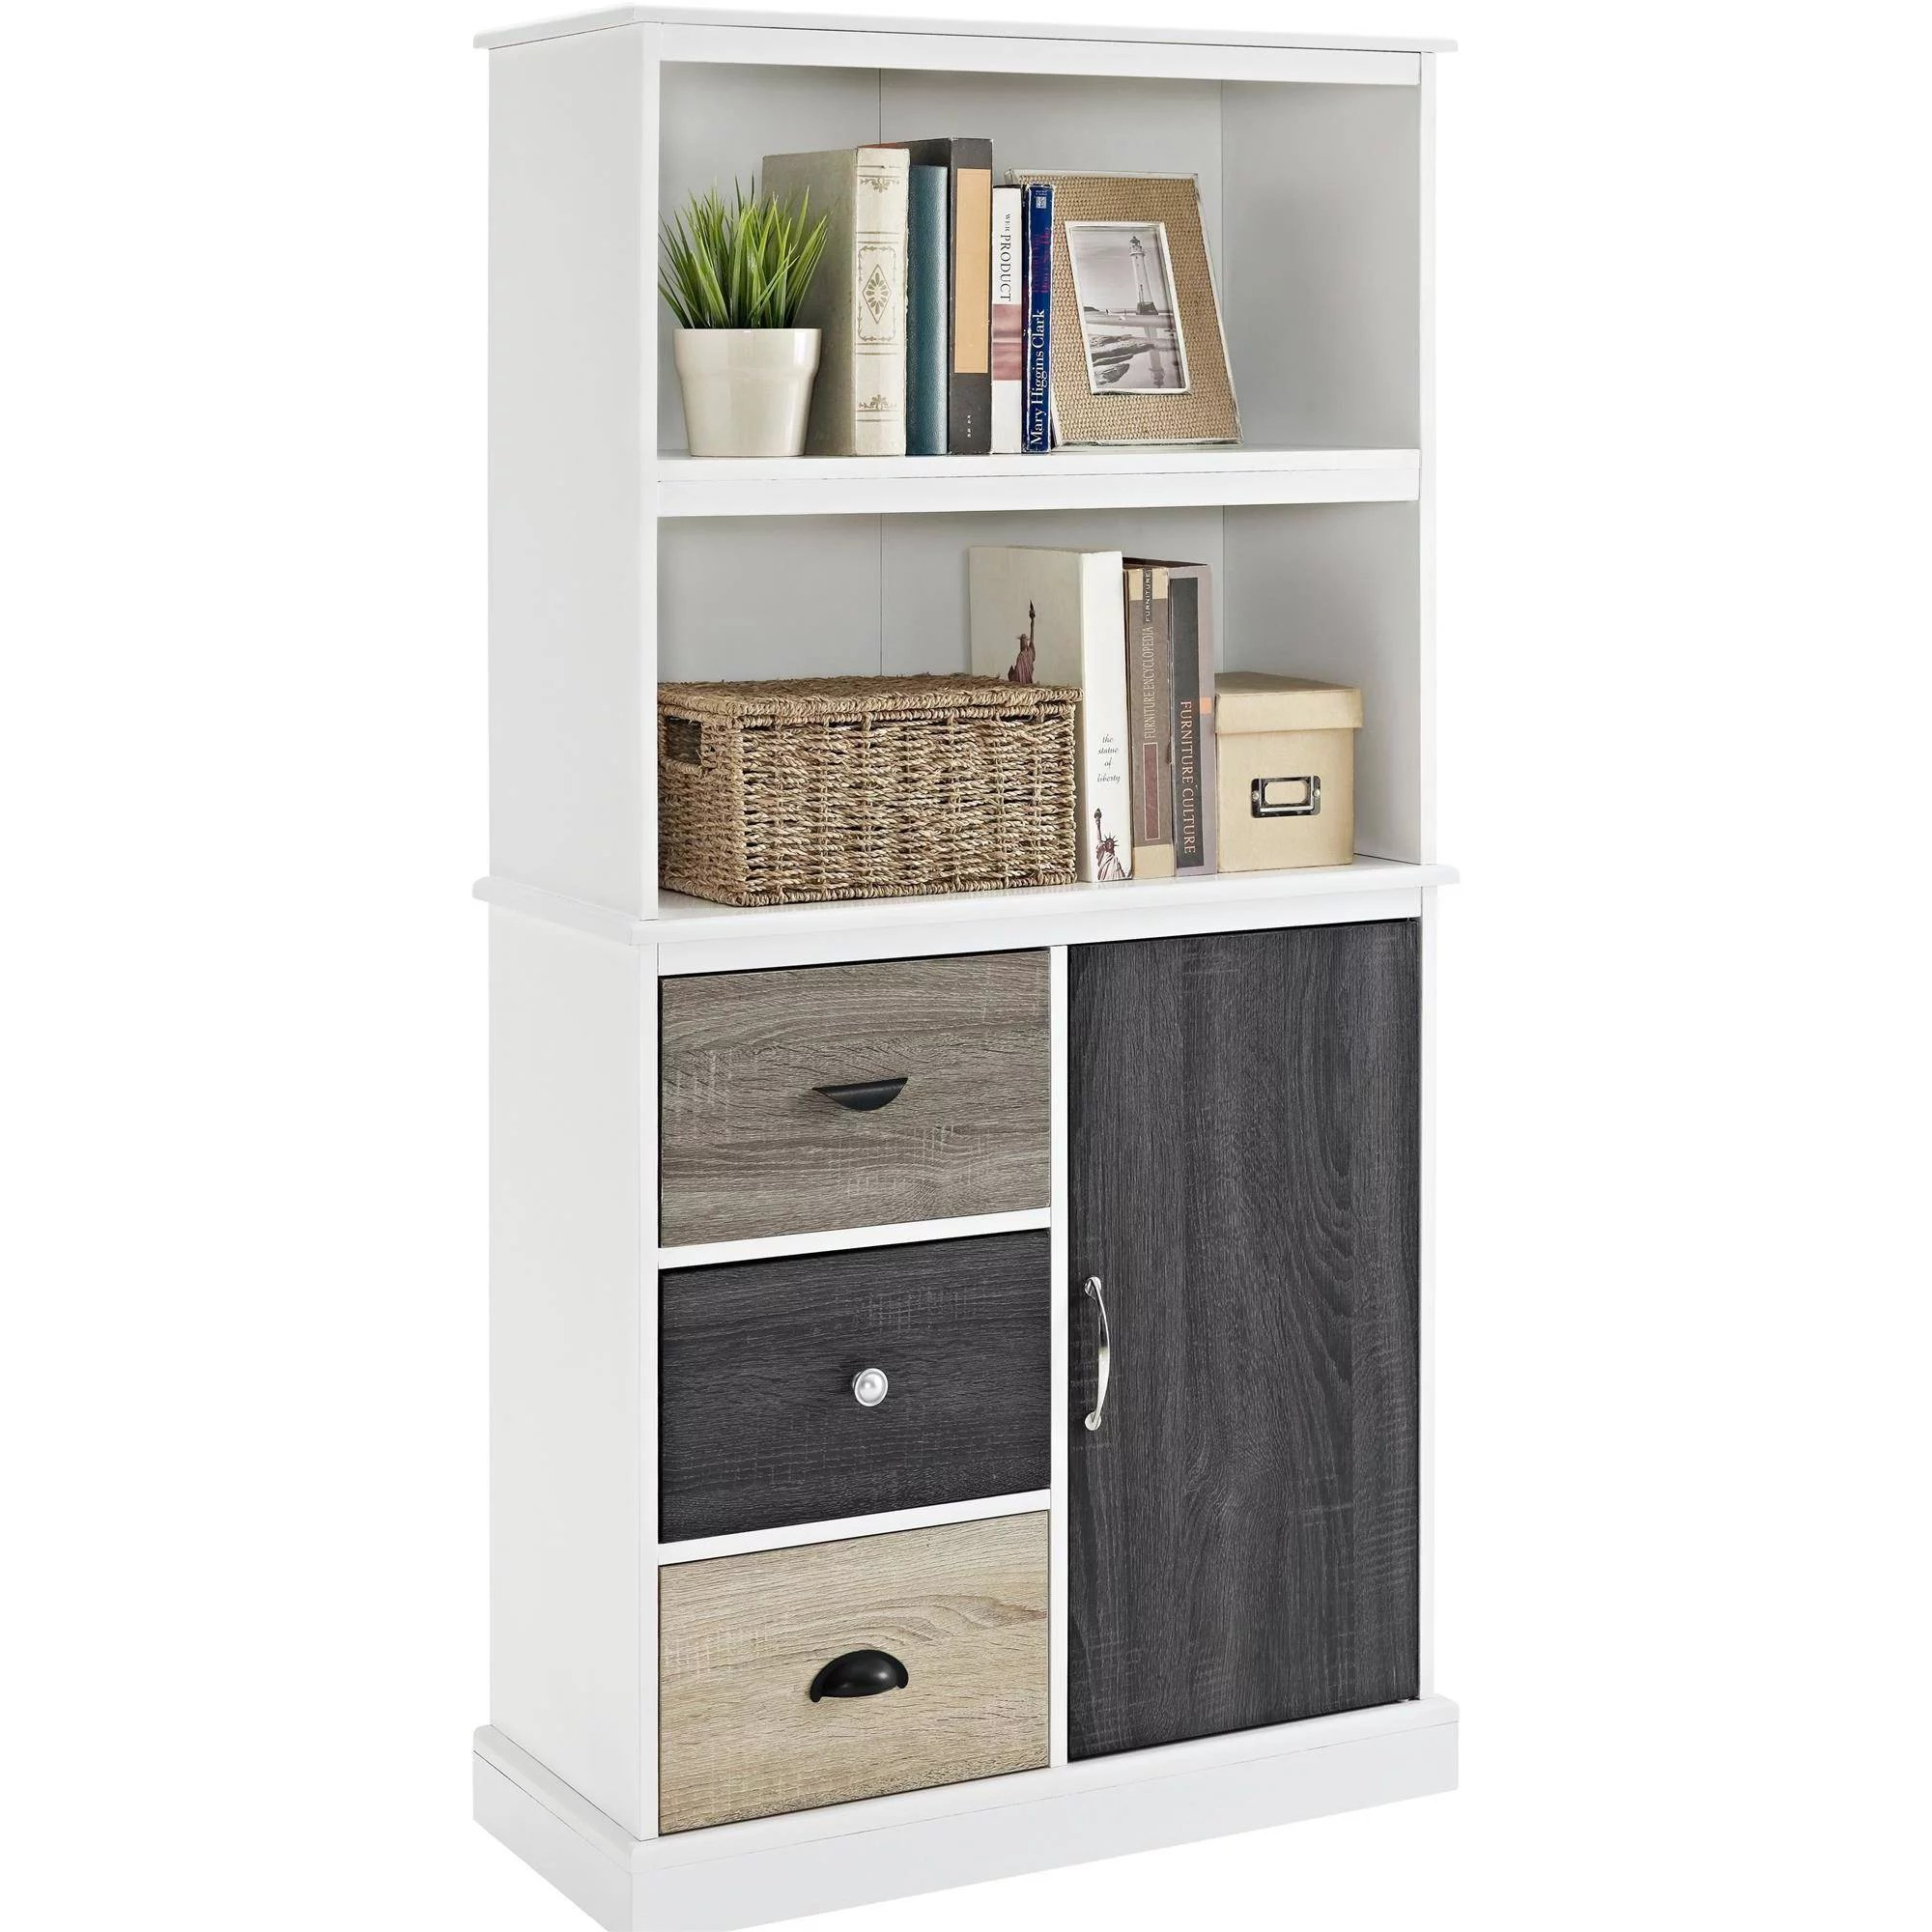 ameriwood home mercer storage bookcase with multicolored door drawers white